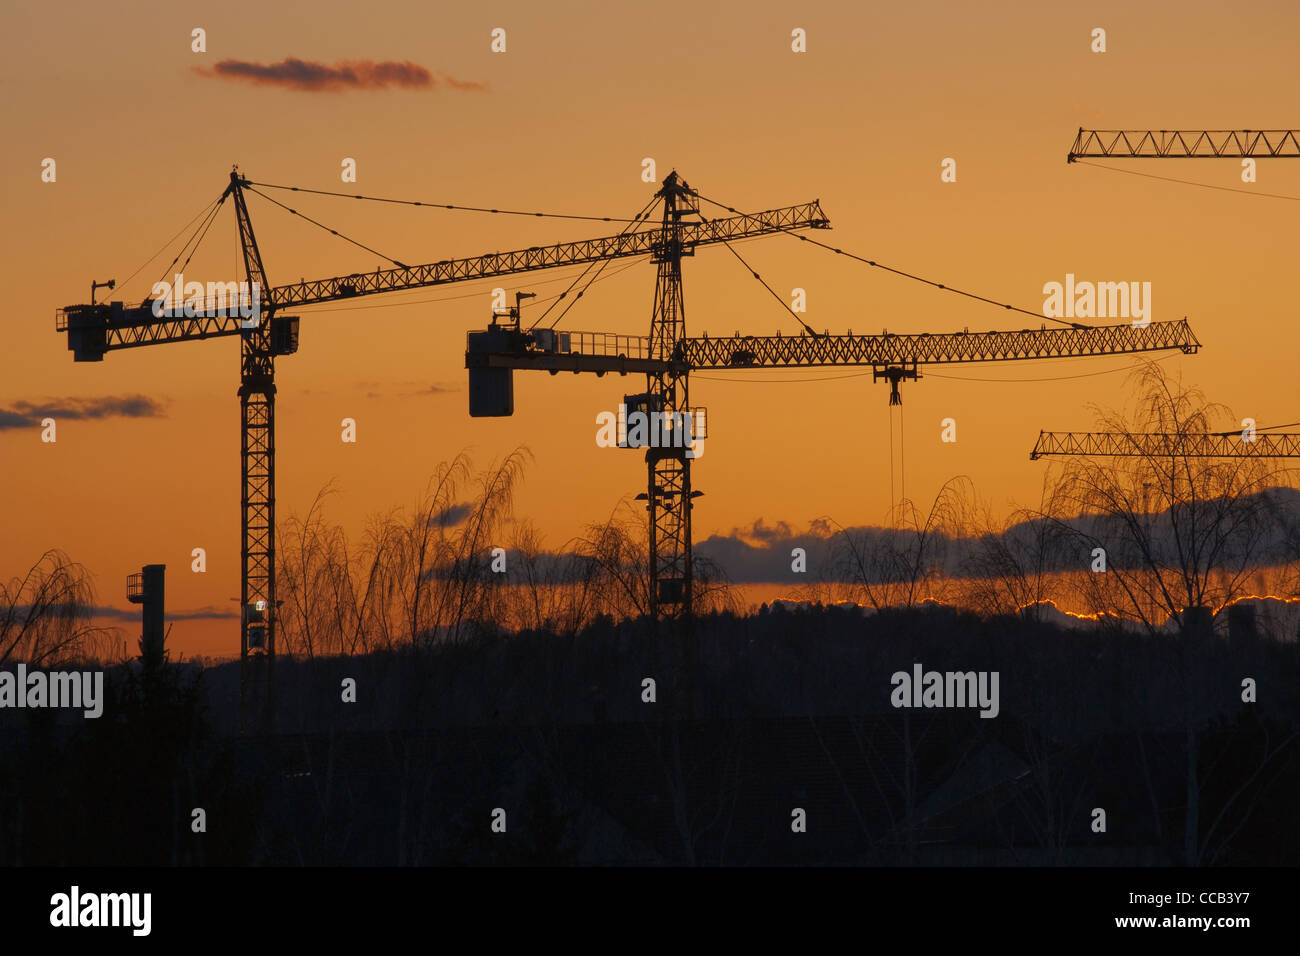 Viele Kräne vor rotem Abendhimmel | a lot of cranes in front of a red evening sky - Stock Image